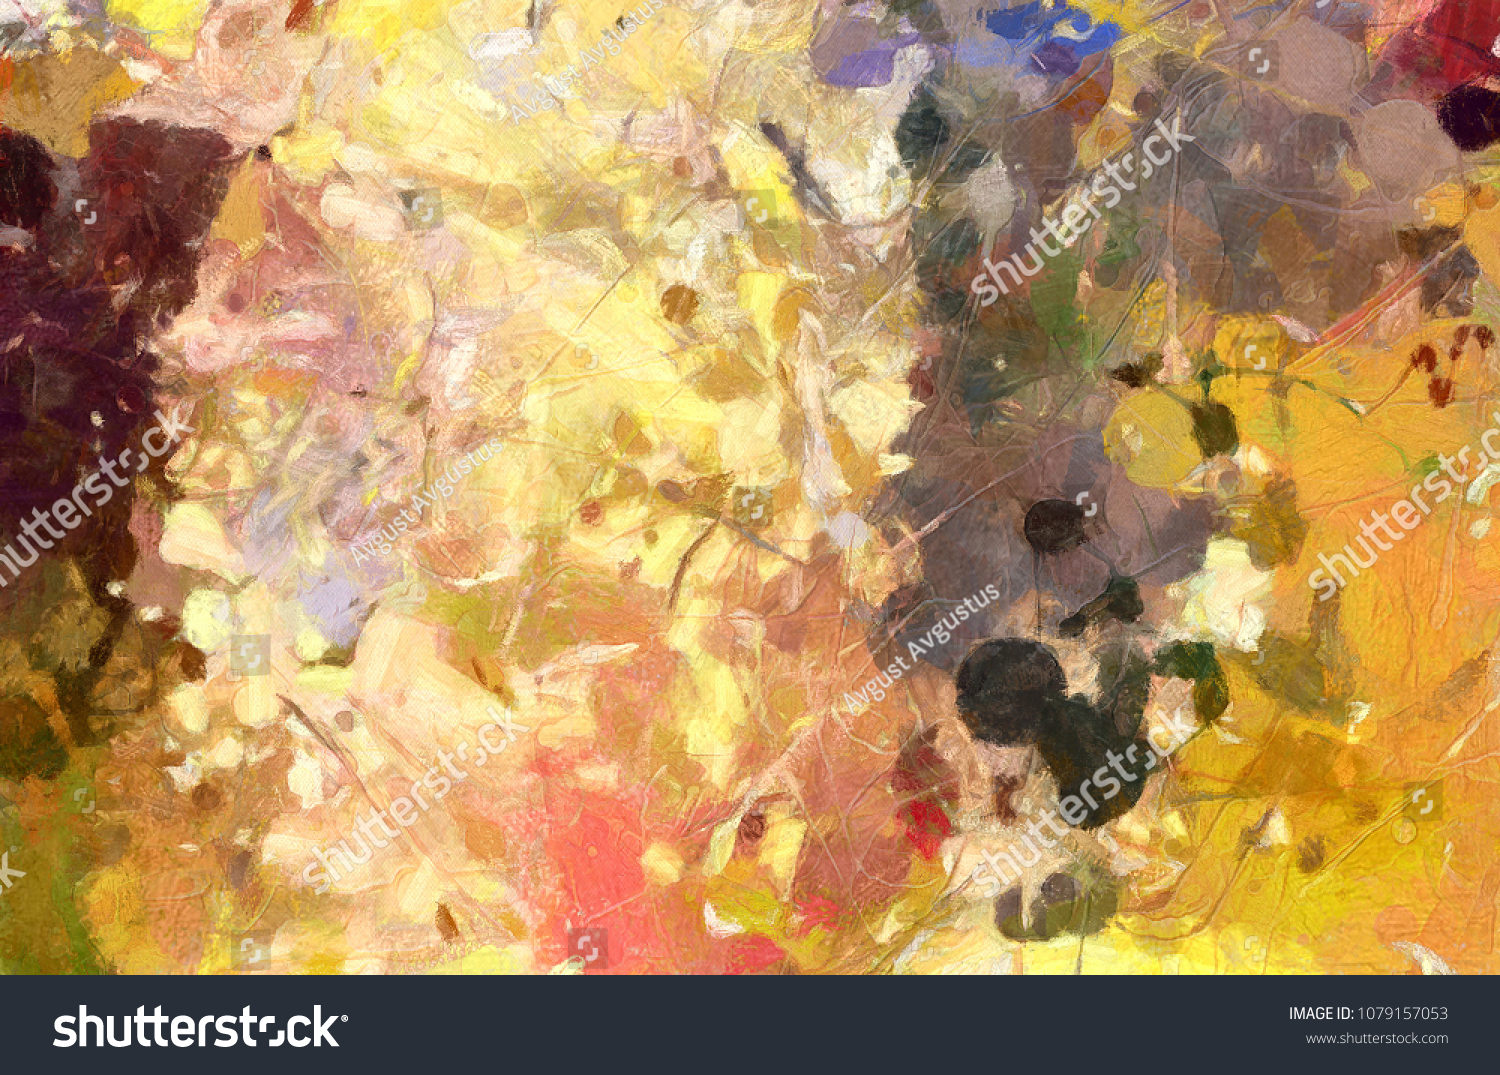 Abstract Watercolor Chaotic Splashes Color Paint Stock Illustration